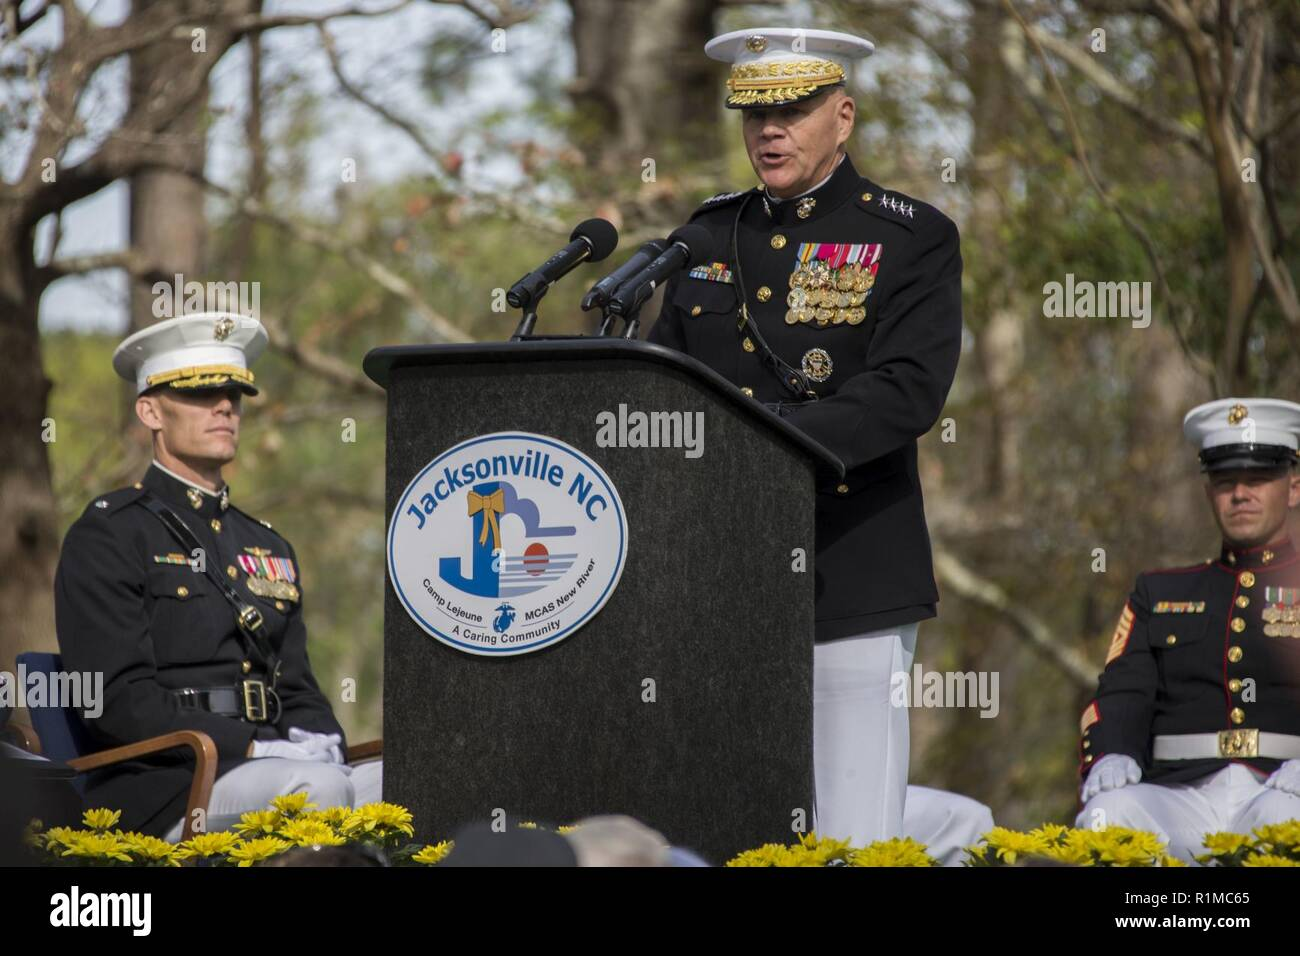 U.S. Marine Corps Gen. Robert B. Neller, 37th Commandant of the Marine Corps, gives his remarks during the 35th Beirut Memorial Observance Ceremony at the Lejeune Memorial Gardens in Jacksonville, N.C., Oct. 23, 2018. A memorial observance is held on Oct. 23 of each year to remember those lives lost during the terrorist attacks at U.S. Marine Barracks, Beirut, Lebanon and Grenada. Stock Photo